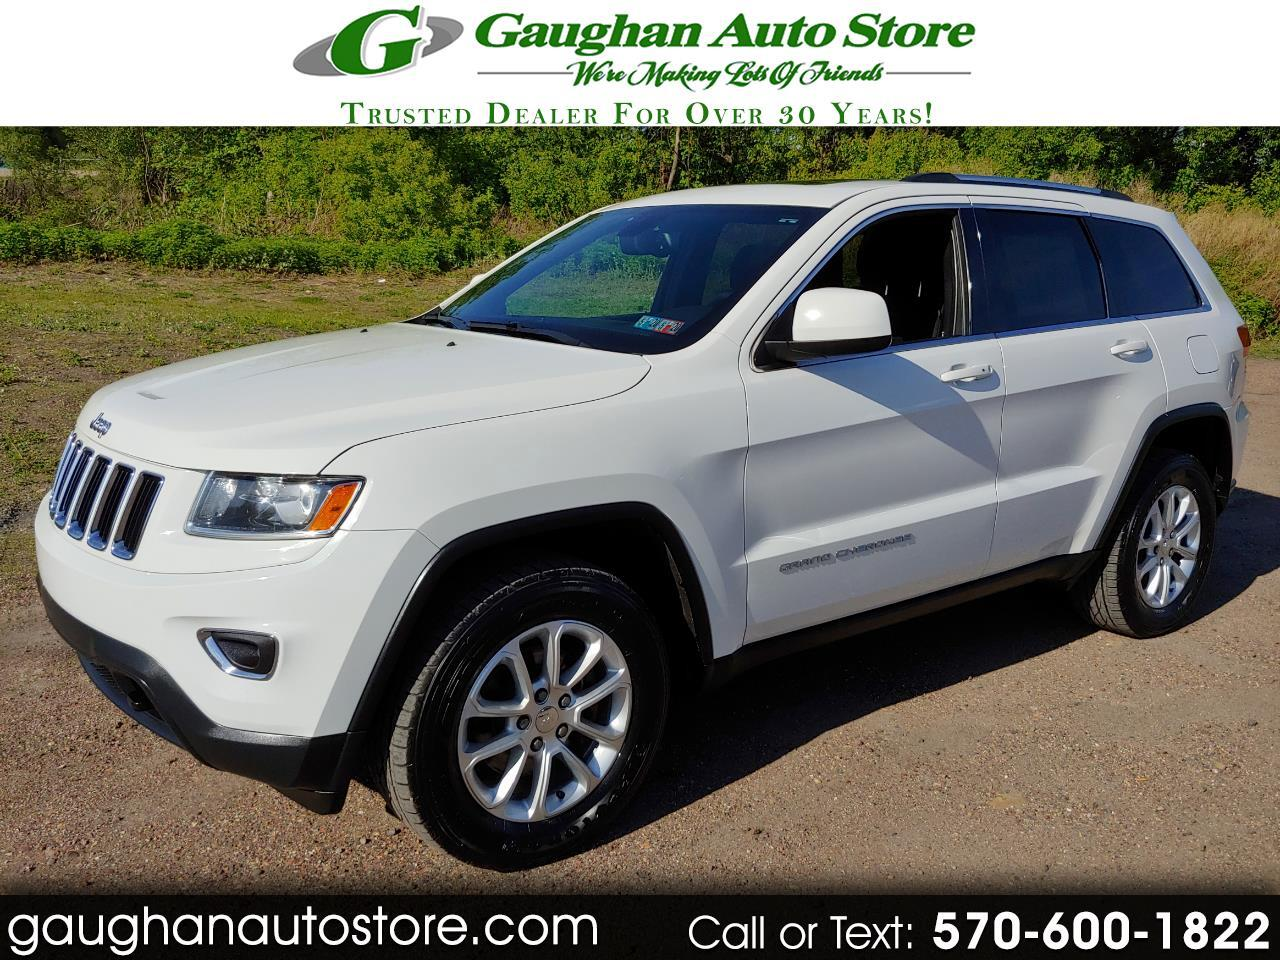 2014 Jeep Grand Cherokee 4WD LAREDO/MOONROOF